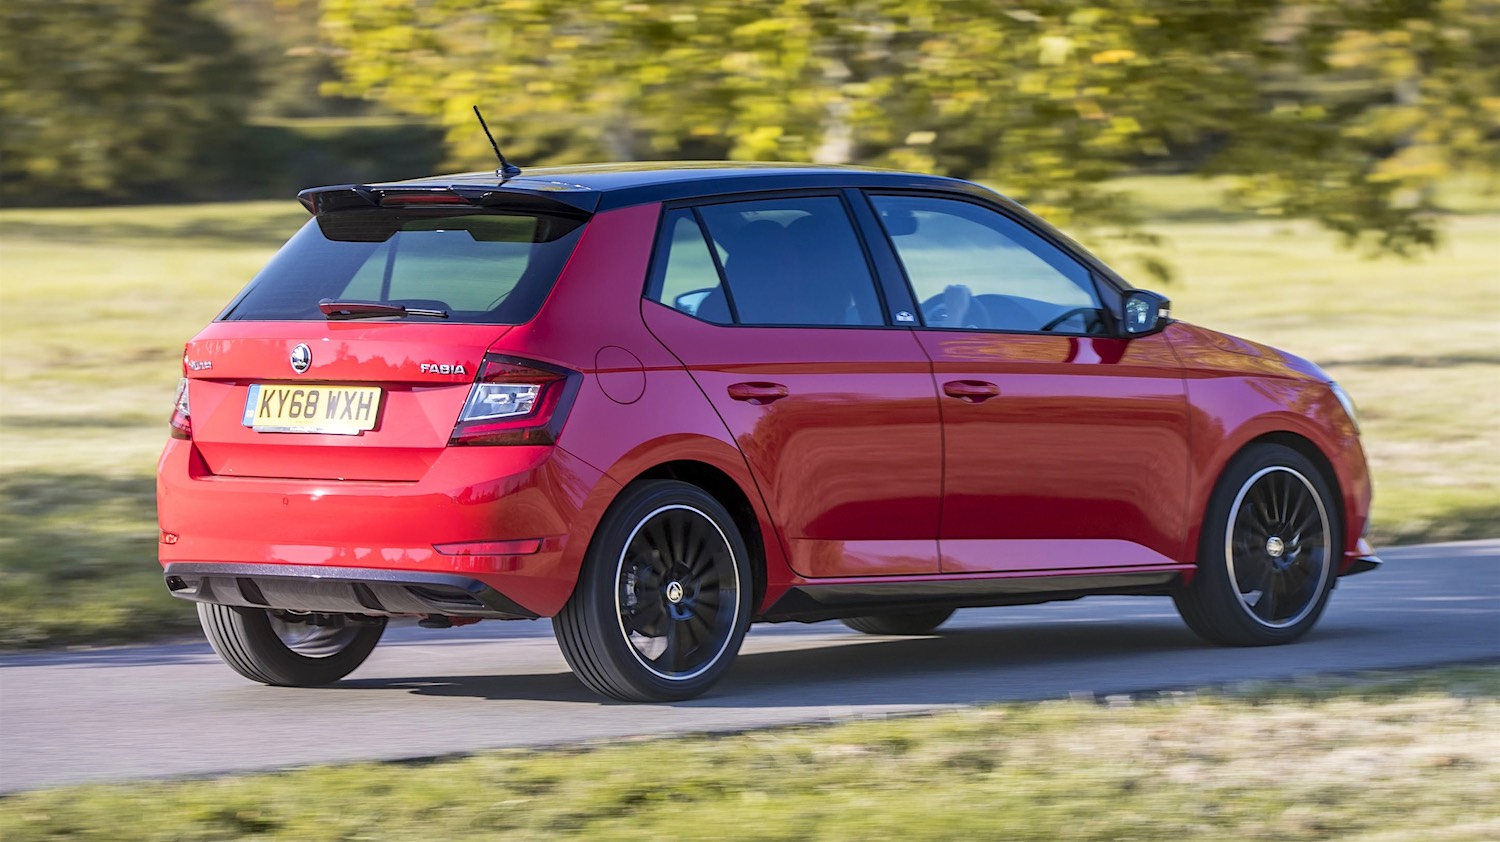 Tim Barnes Clay reviews the upated Skoda Fabia Monte Carlo for drive 15